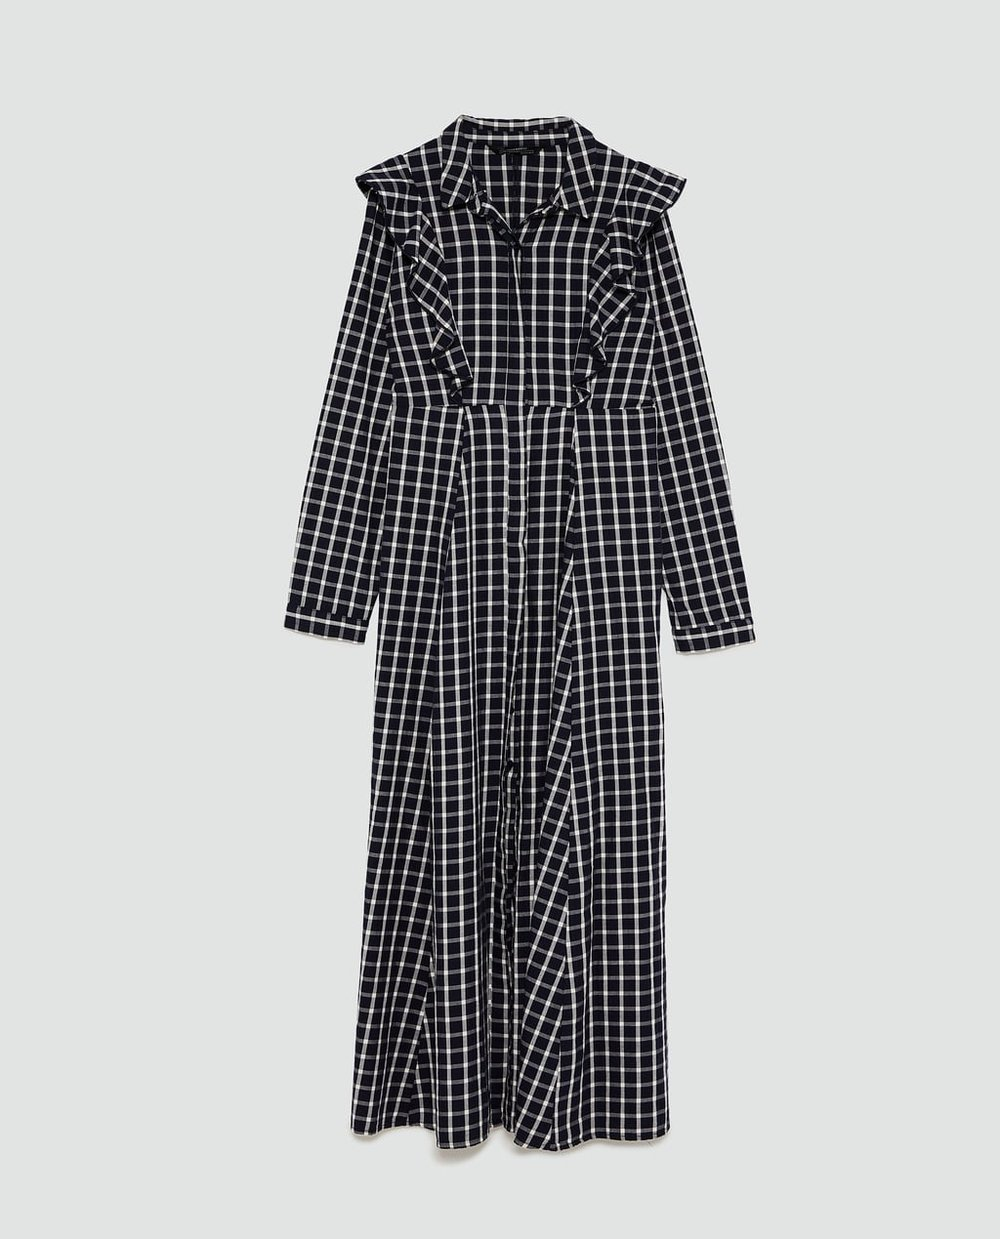 - A-line shirt dress with long sleeves. Ruffle trims on the body. Front button fastening hidden by a placket.